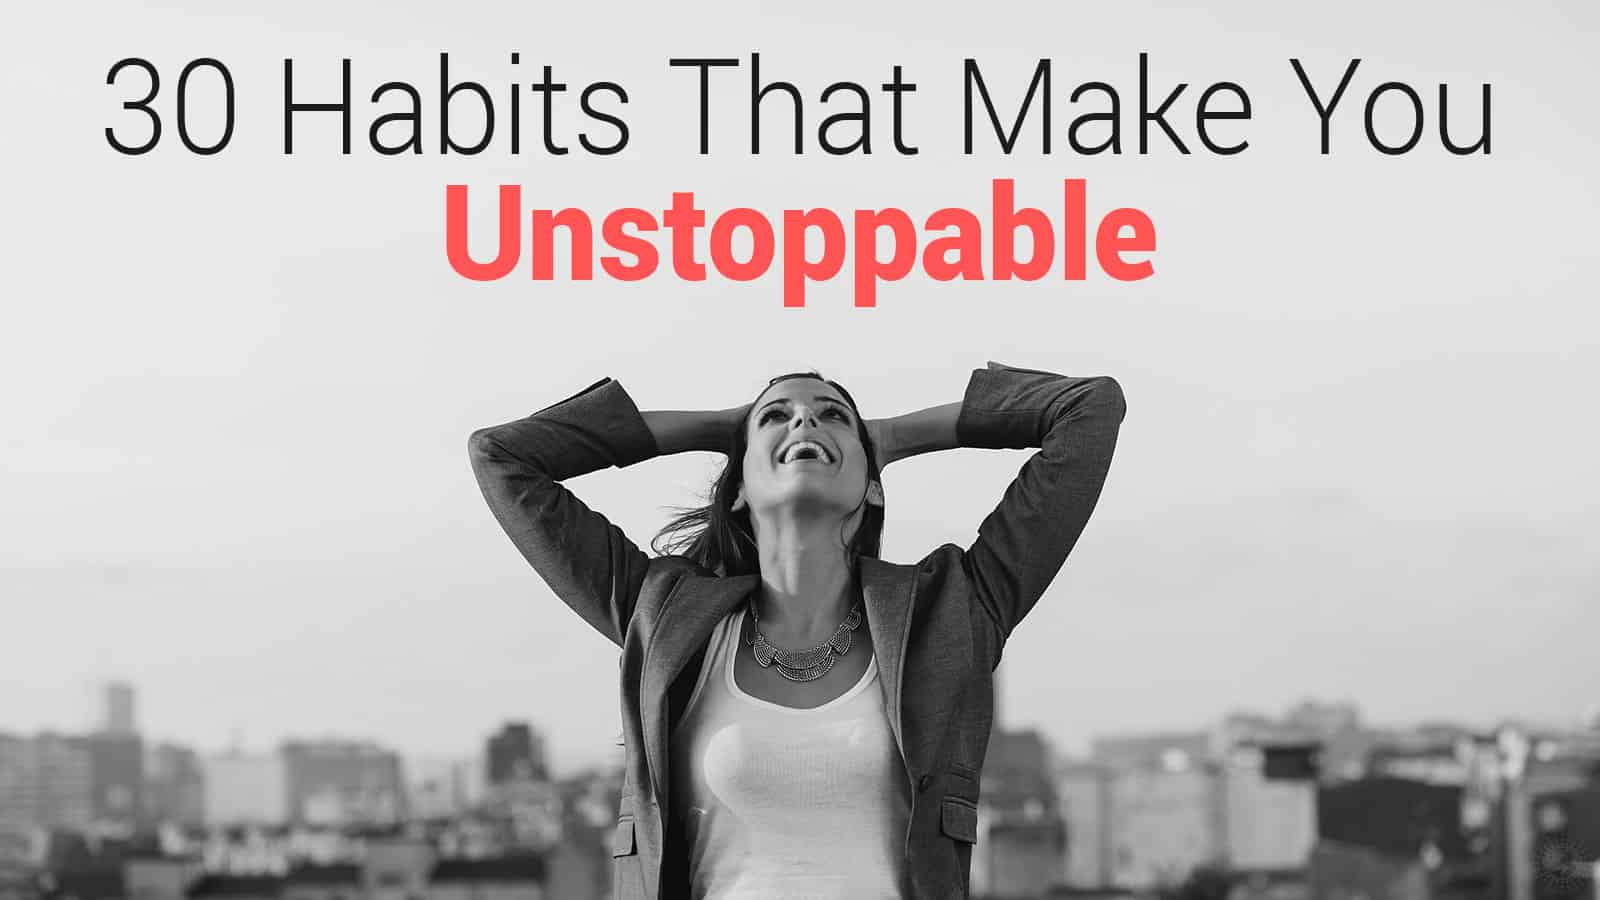 30 Habits That Make You Unstoppable